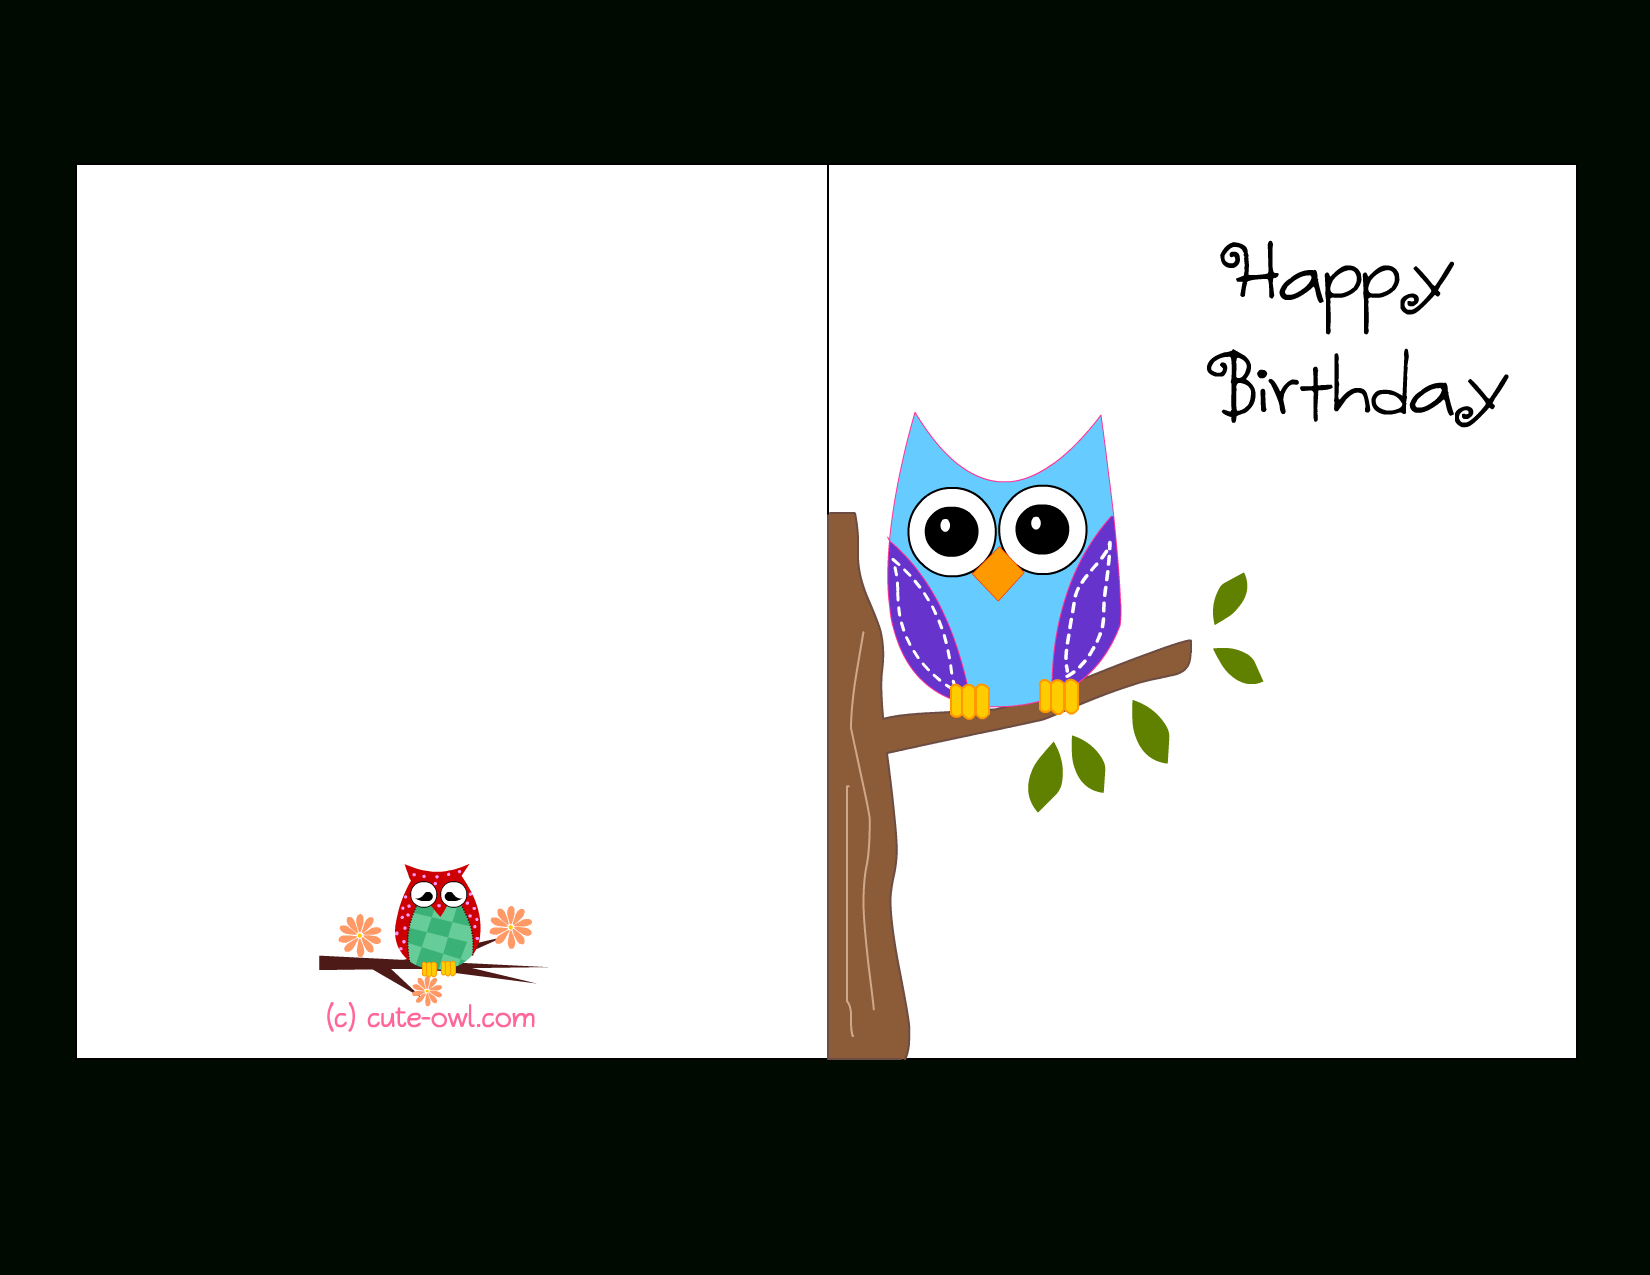 Printable Free Birthday Cards - Demir.iso-Consulting.co - Free Printable Hallmark Cards